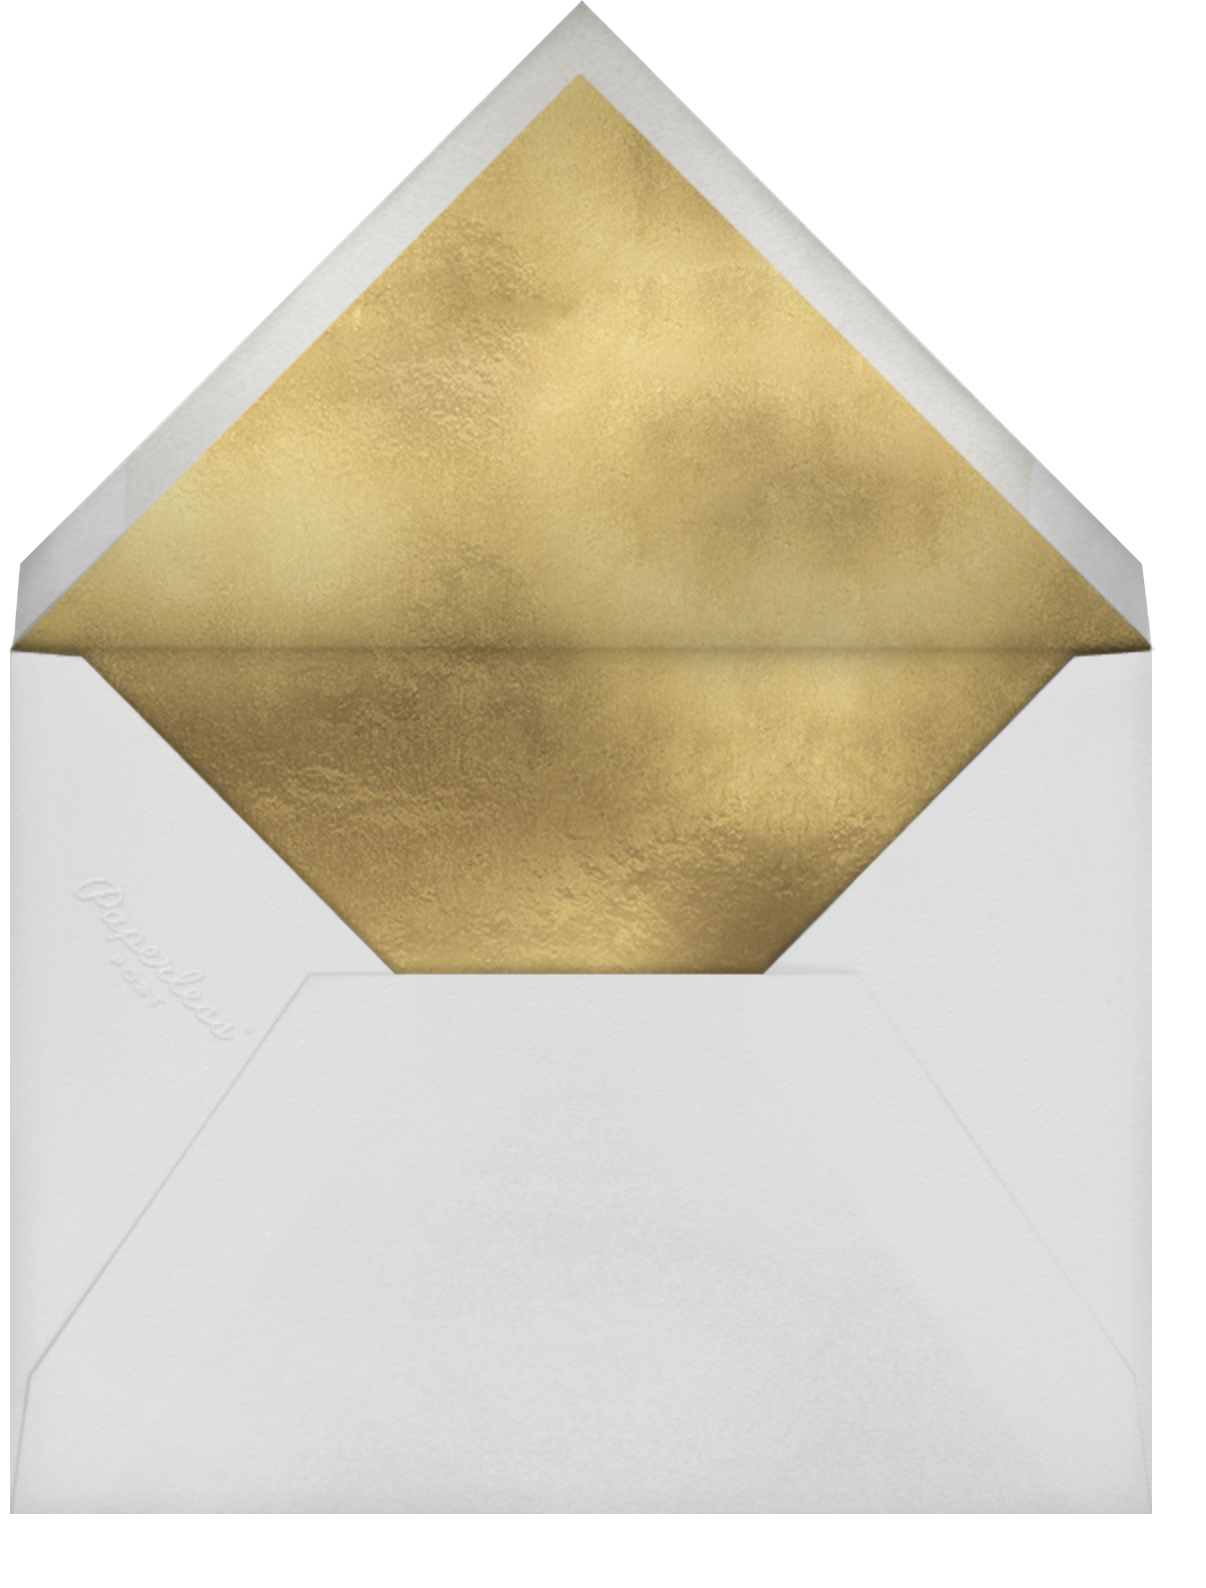 Gold Unikko - White - Marimekko - Adult birthday - envelope back